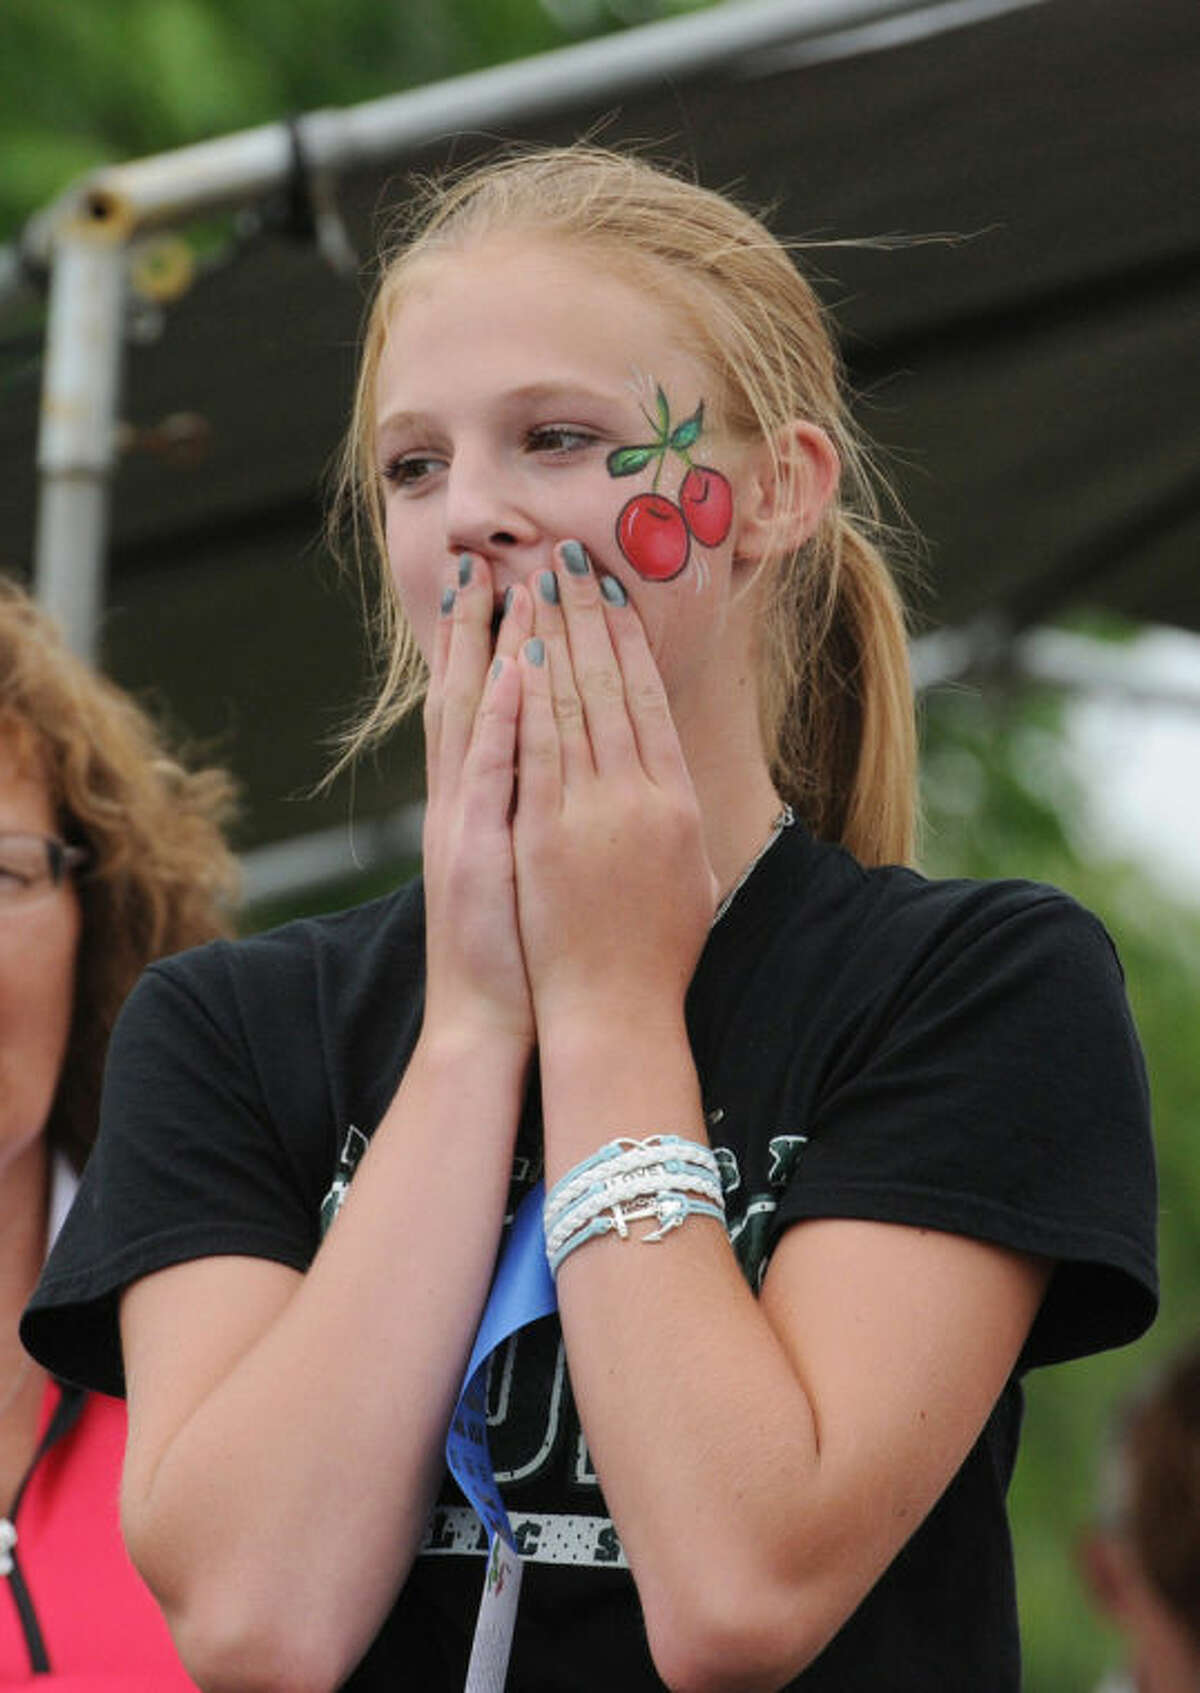 Chloe Bartz, 13, from Niles, Mich., reacts after winning the women's division during the 41st International Cherry Pit-Spitting Championship on Saturday, July 5, 2014, at Tree-Mendus Fruit Farm in Eau Claire, Mich. (AP Photo/The Herald-Palladium, Don Campbell)